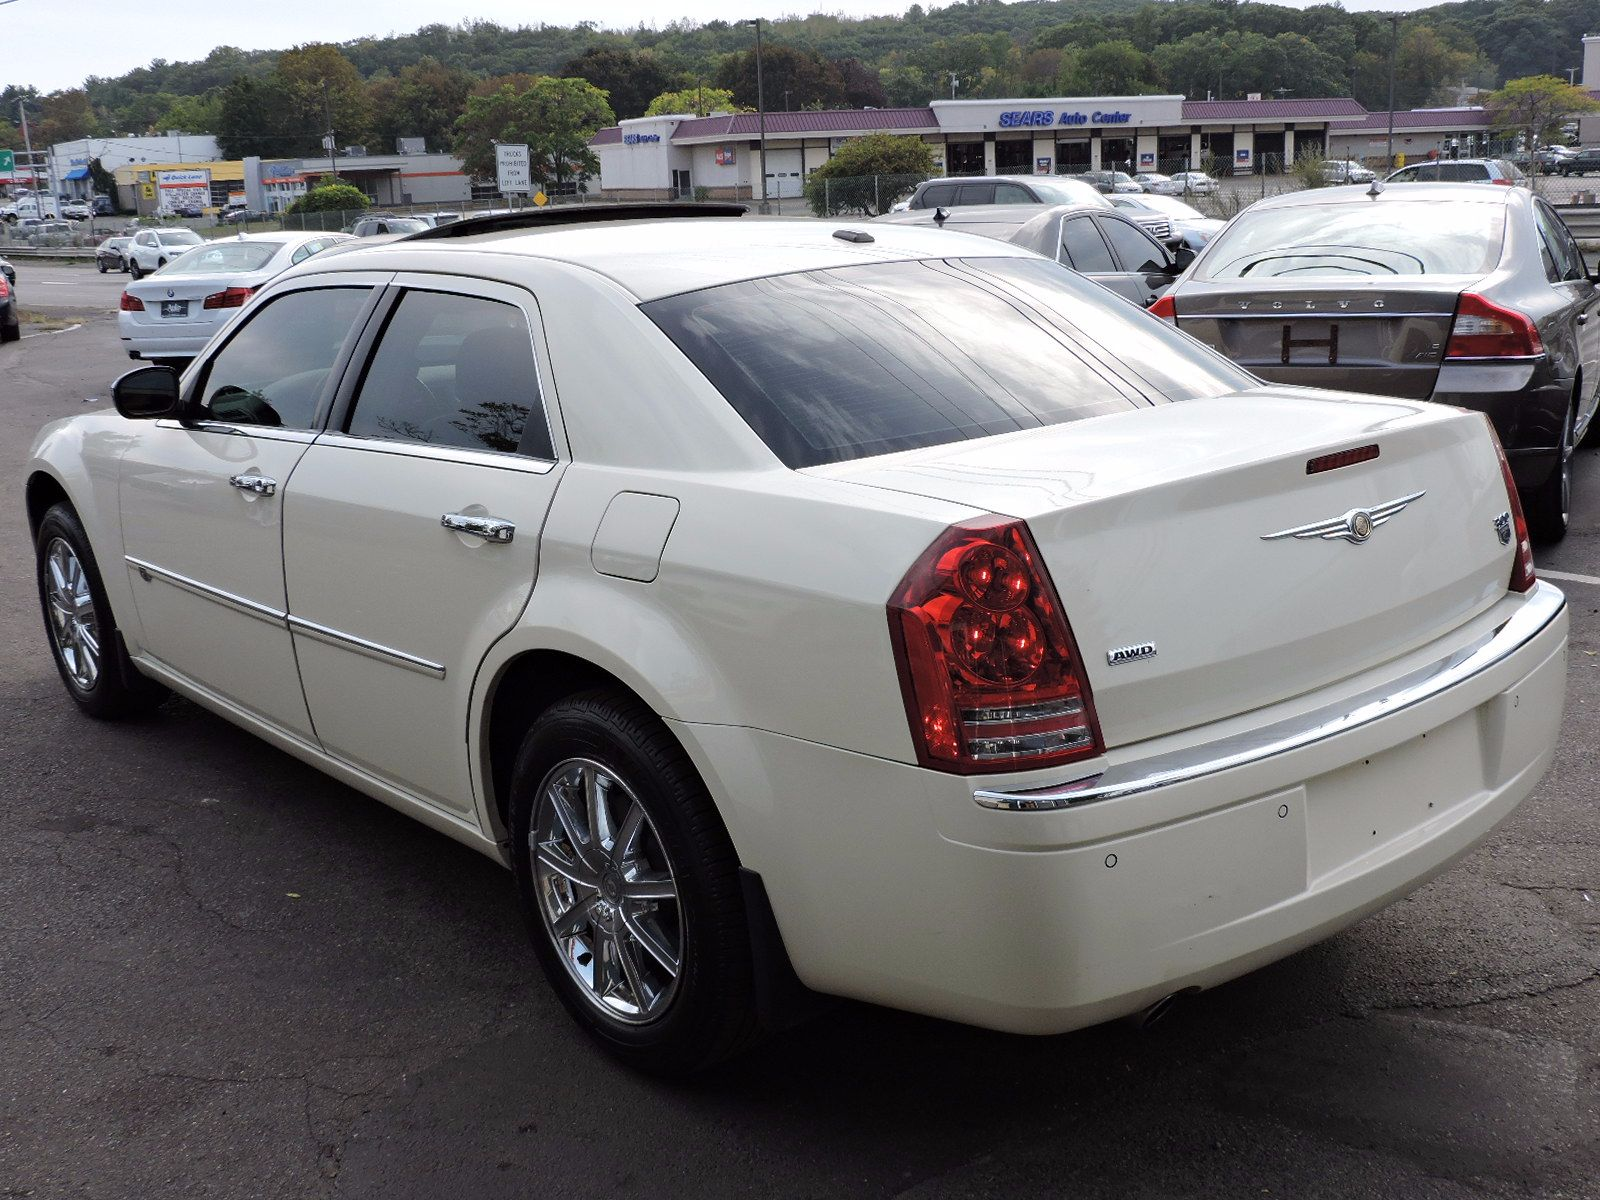 2010 Chrysler 300 - Hemi - All Wheel Drive - Navigation